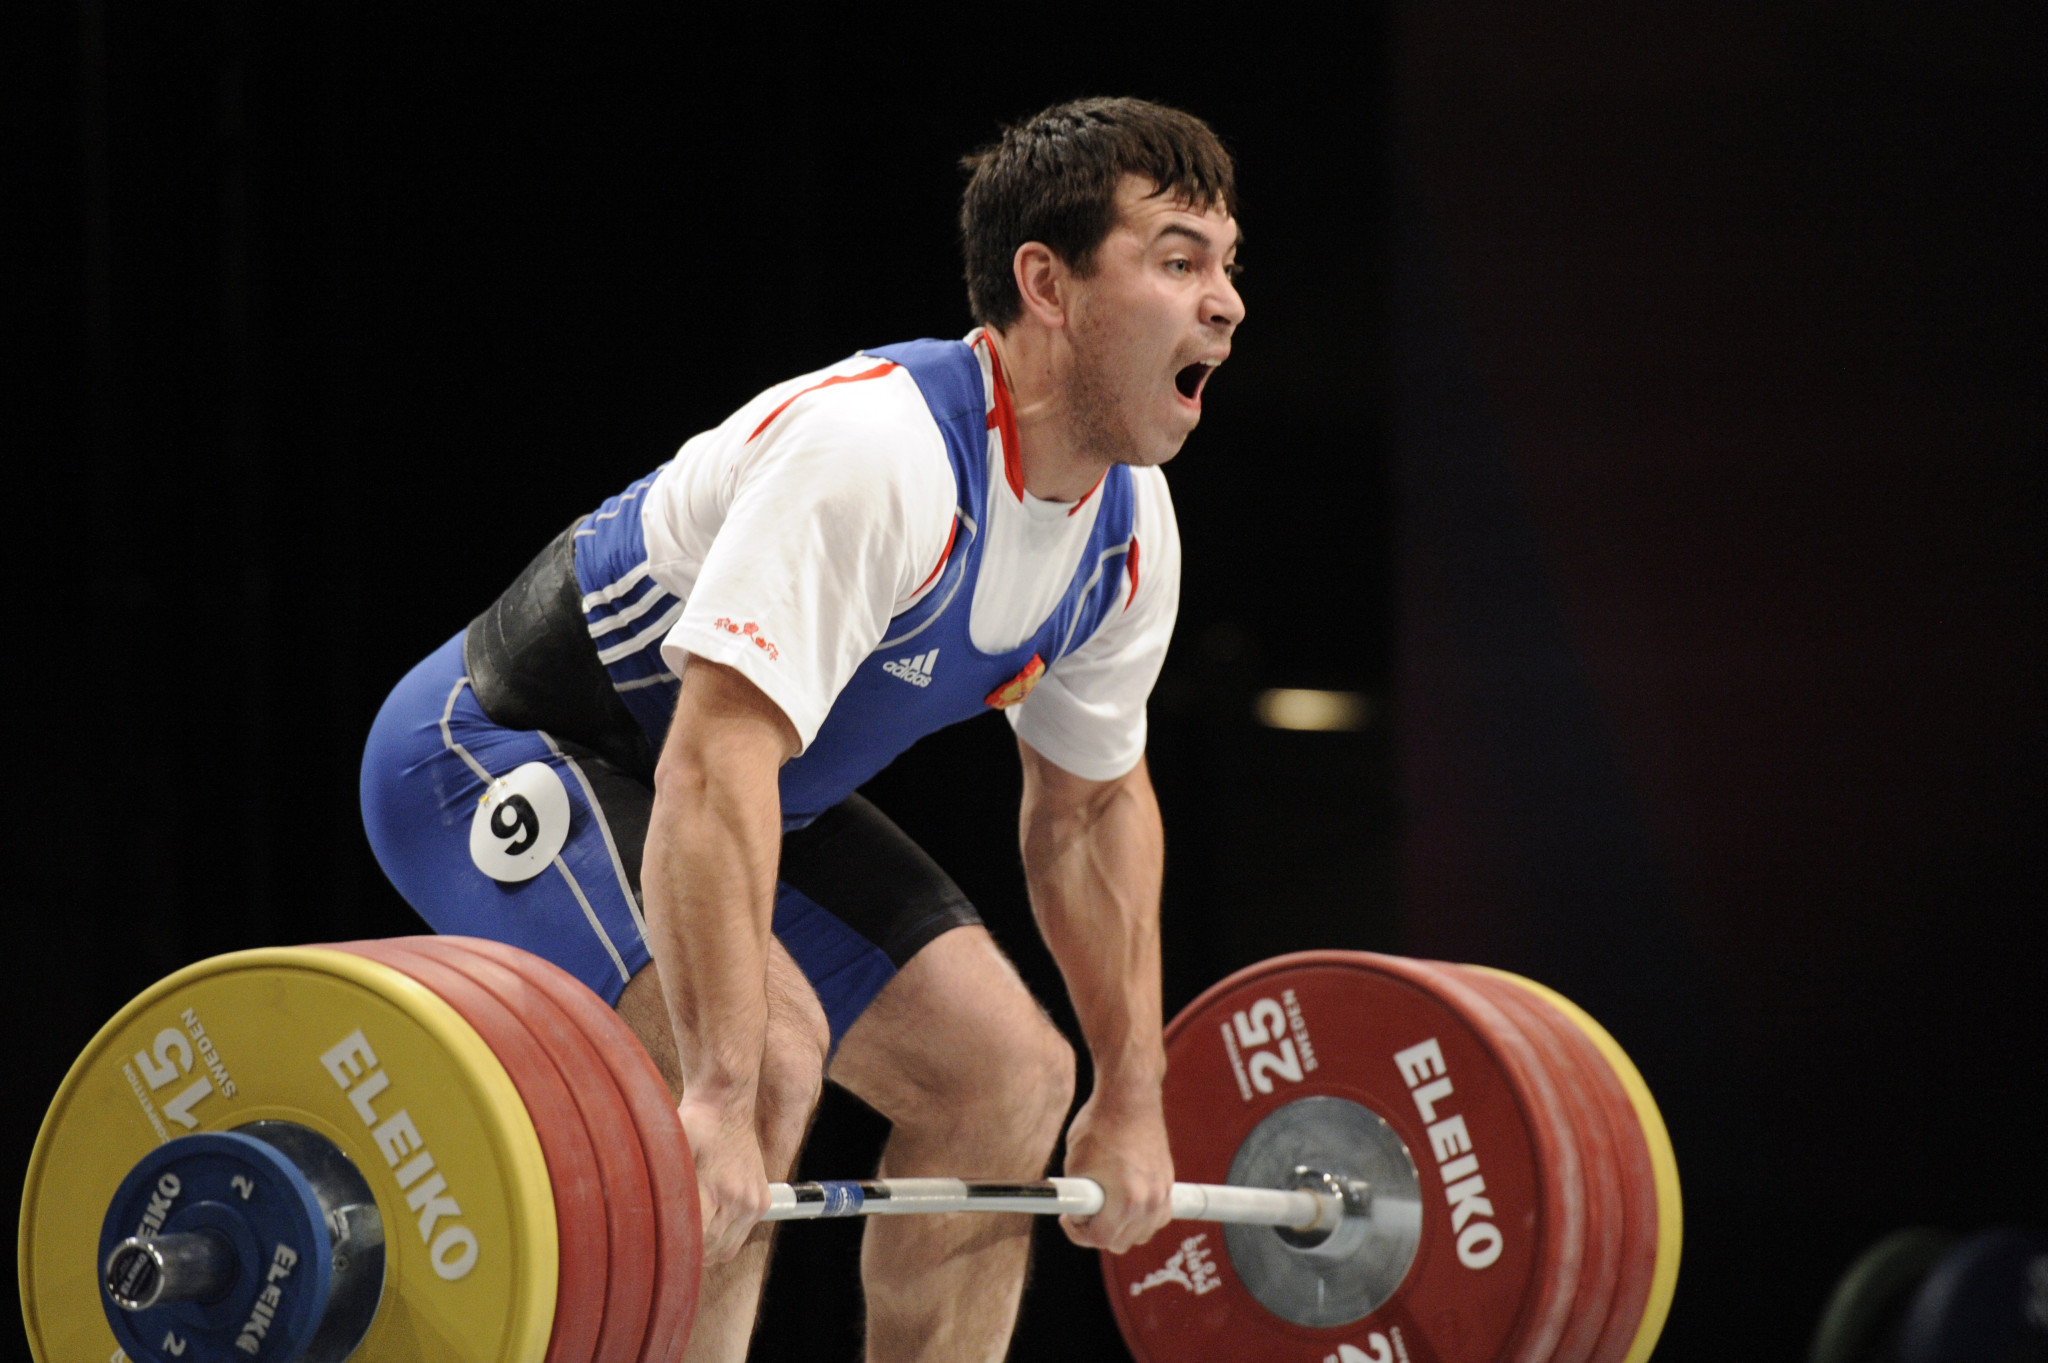 Rinat Kireev, the European Weightlifting 94kg gold medallist in 2013, has been banned for four years by RUSADA following a positive drugs test ©Getty Images